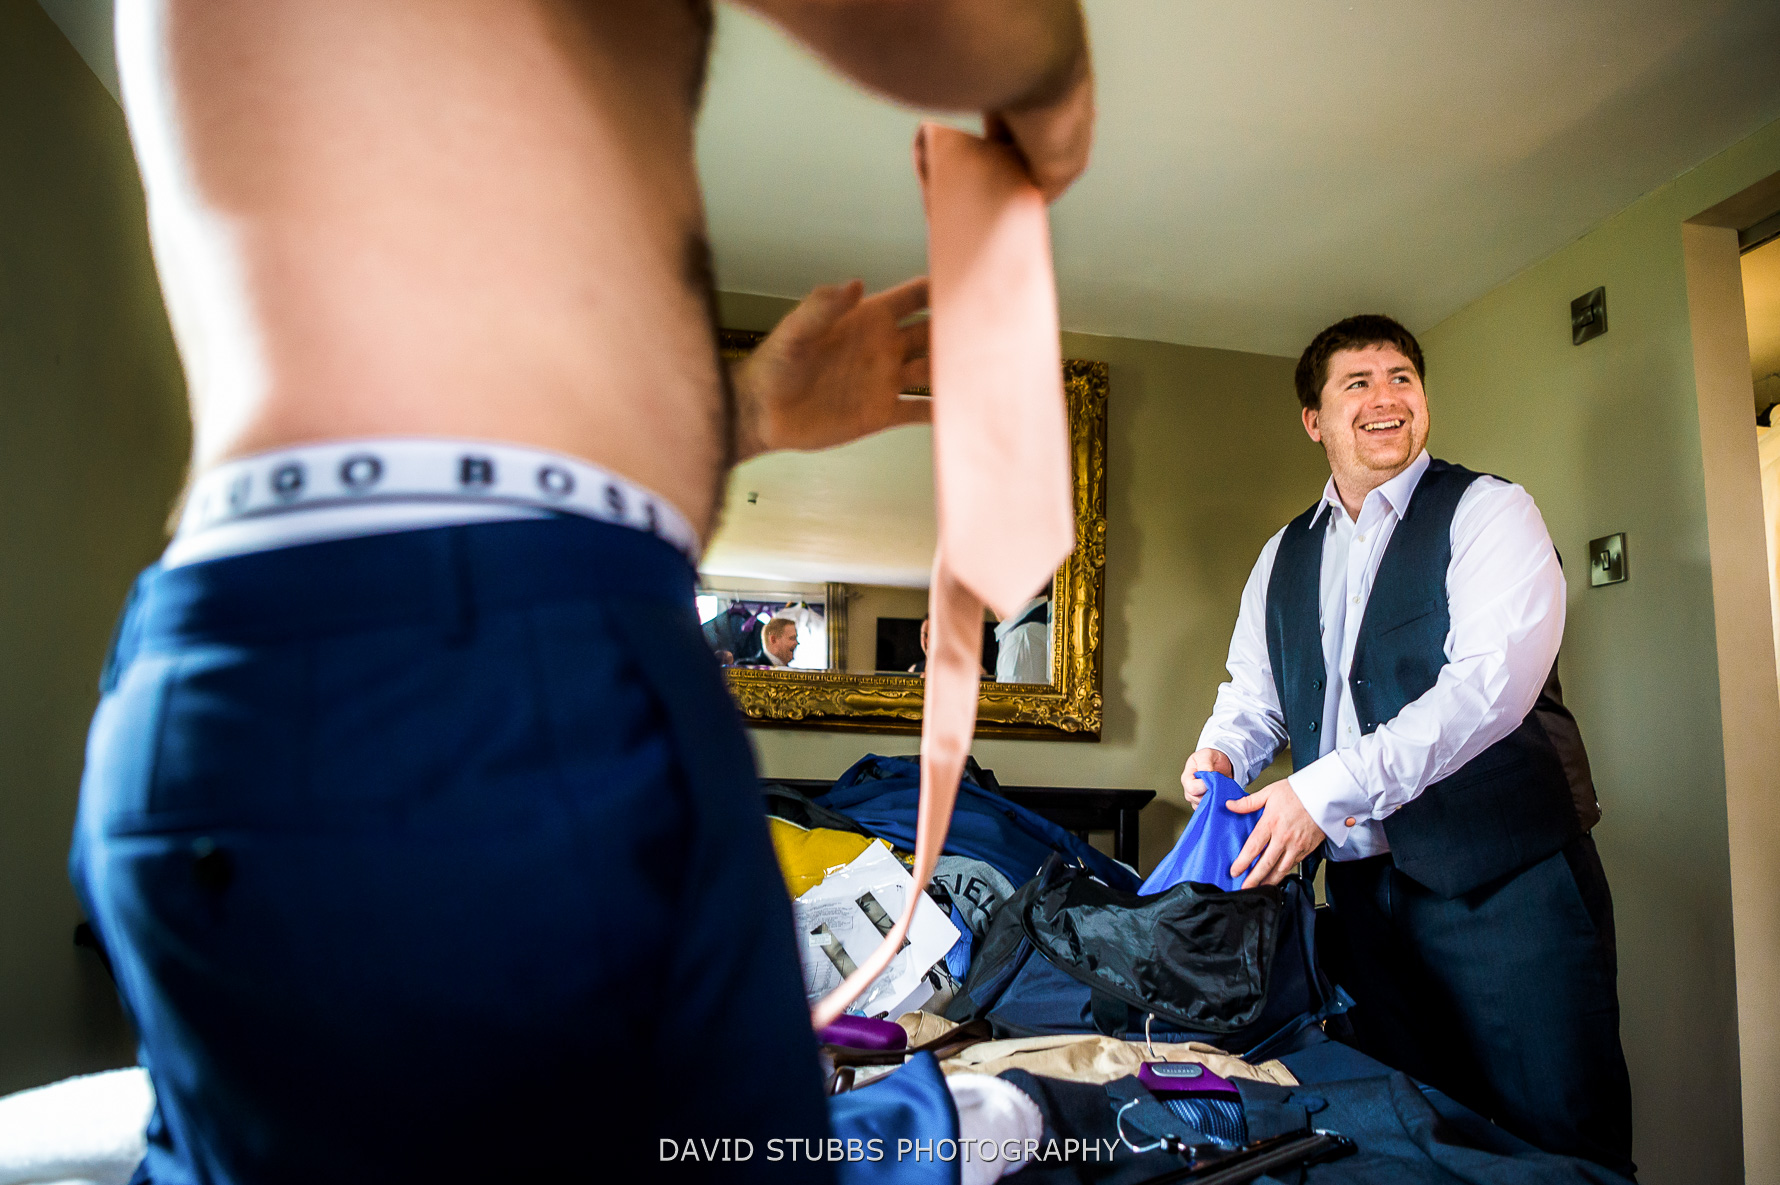 ties and boxers